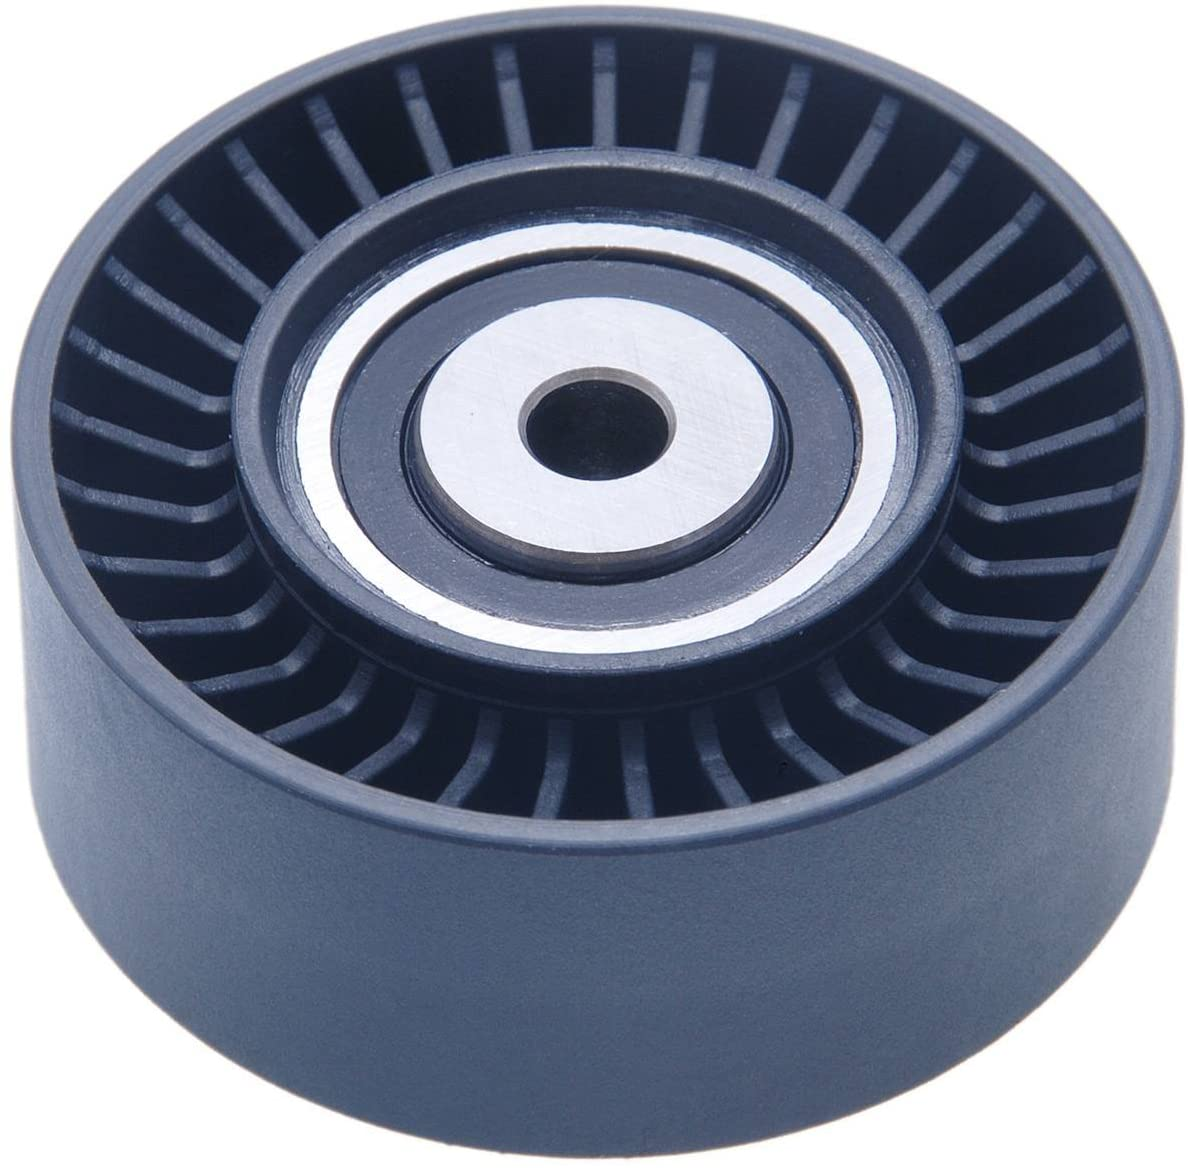 1341A008 / 1341A008 - Pulley Idler For Mitsubishi